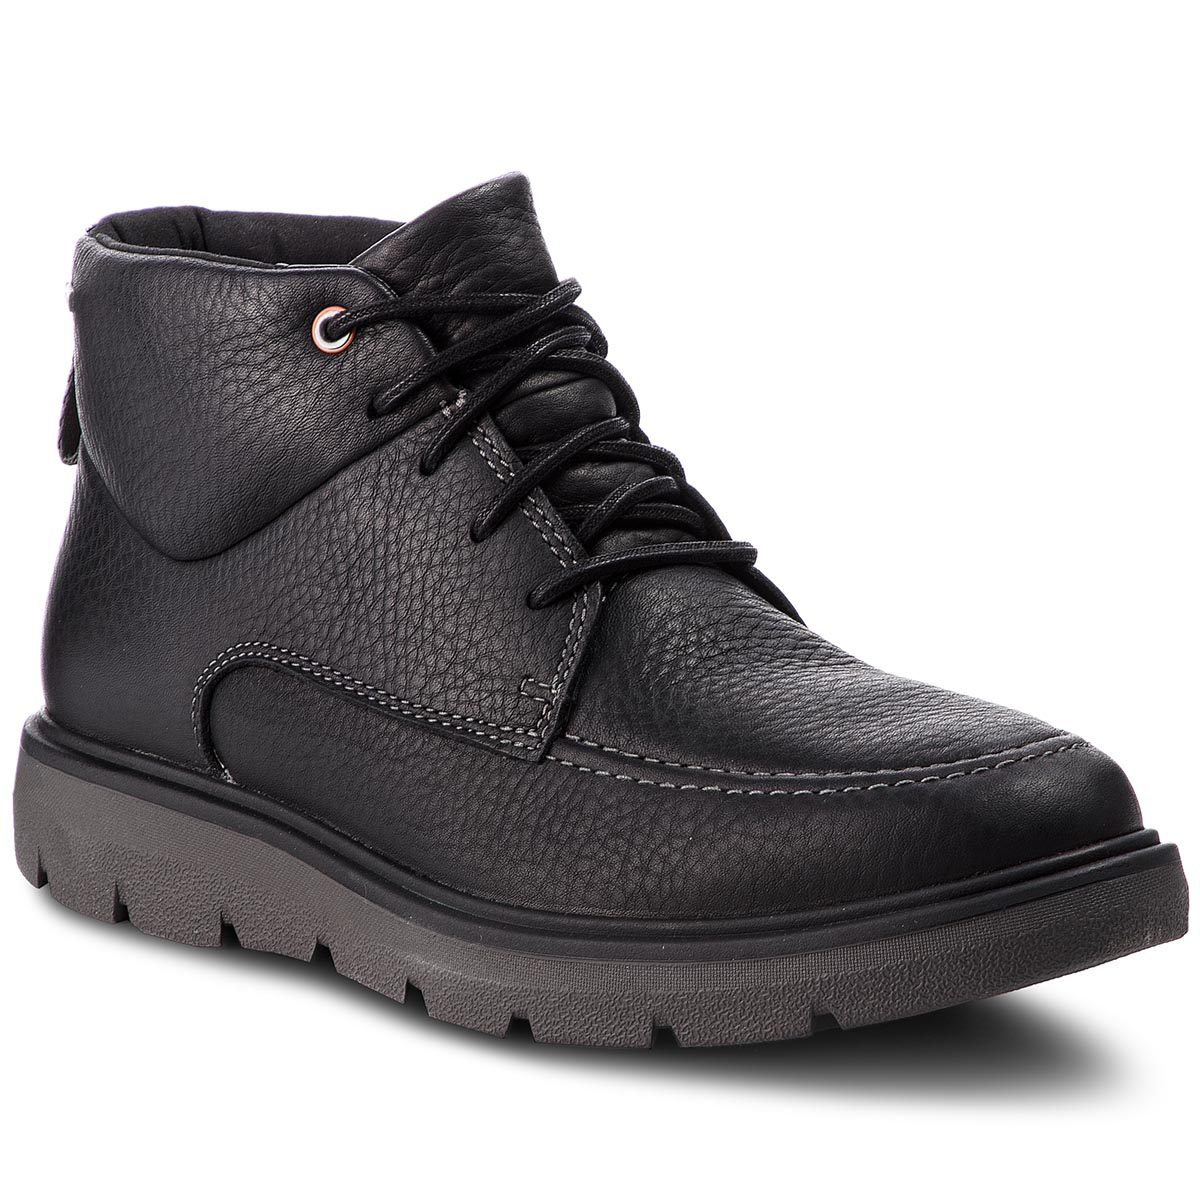 Ghete CLARKS - Un Map Mid Gtx GORE-TEX 261367957 Black Leather